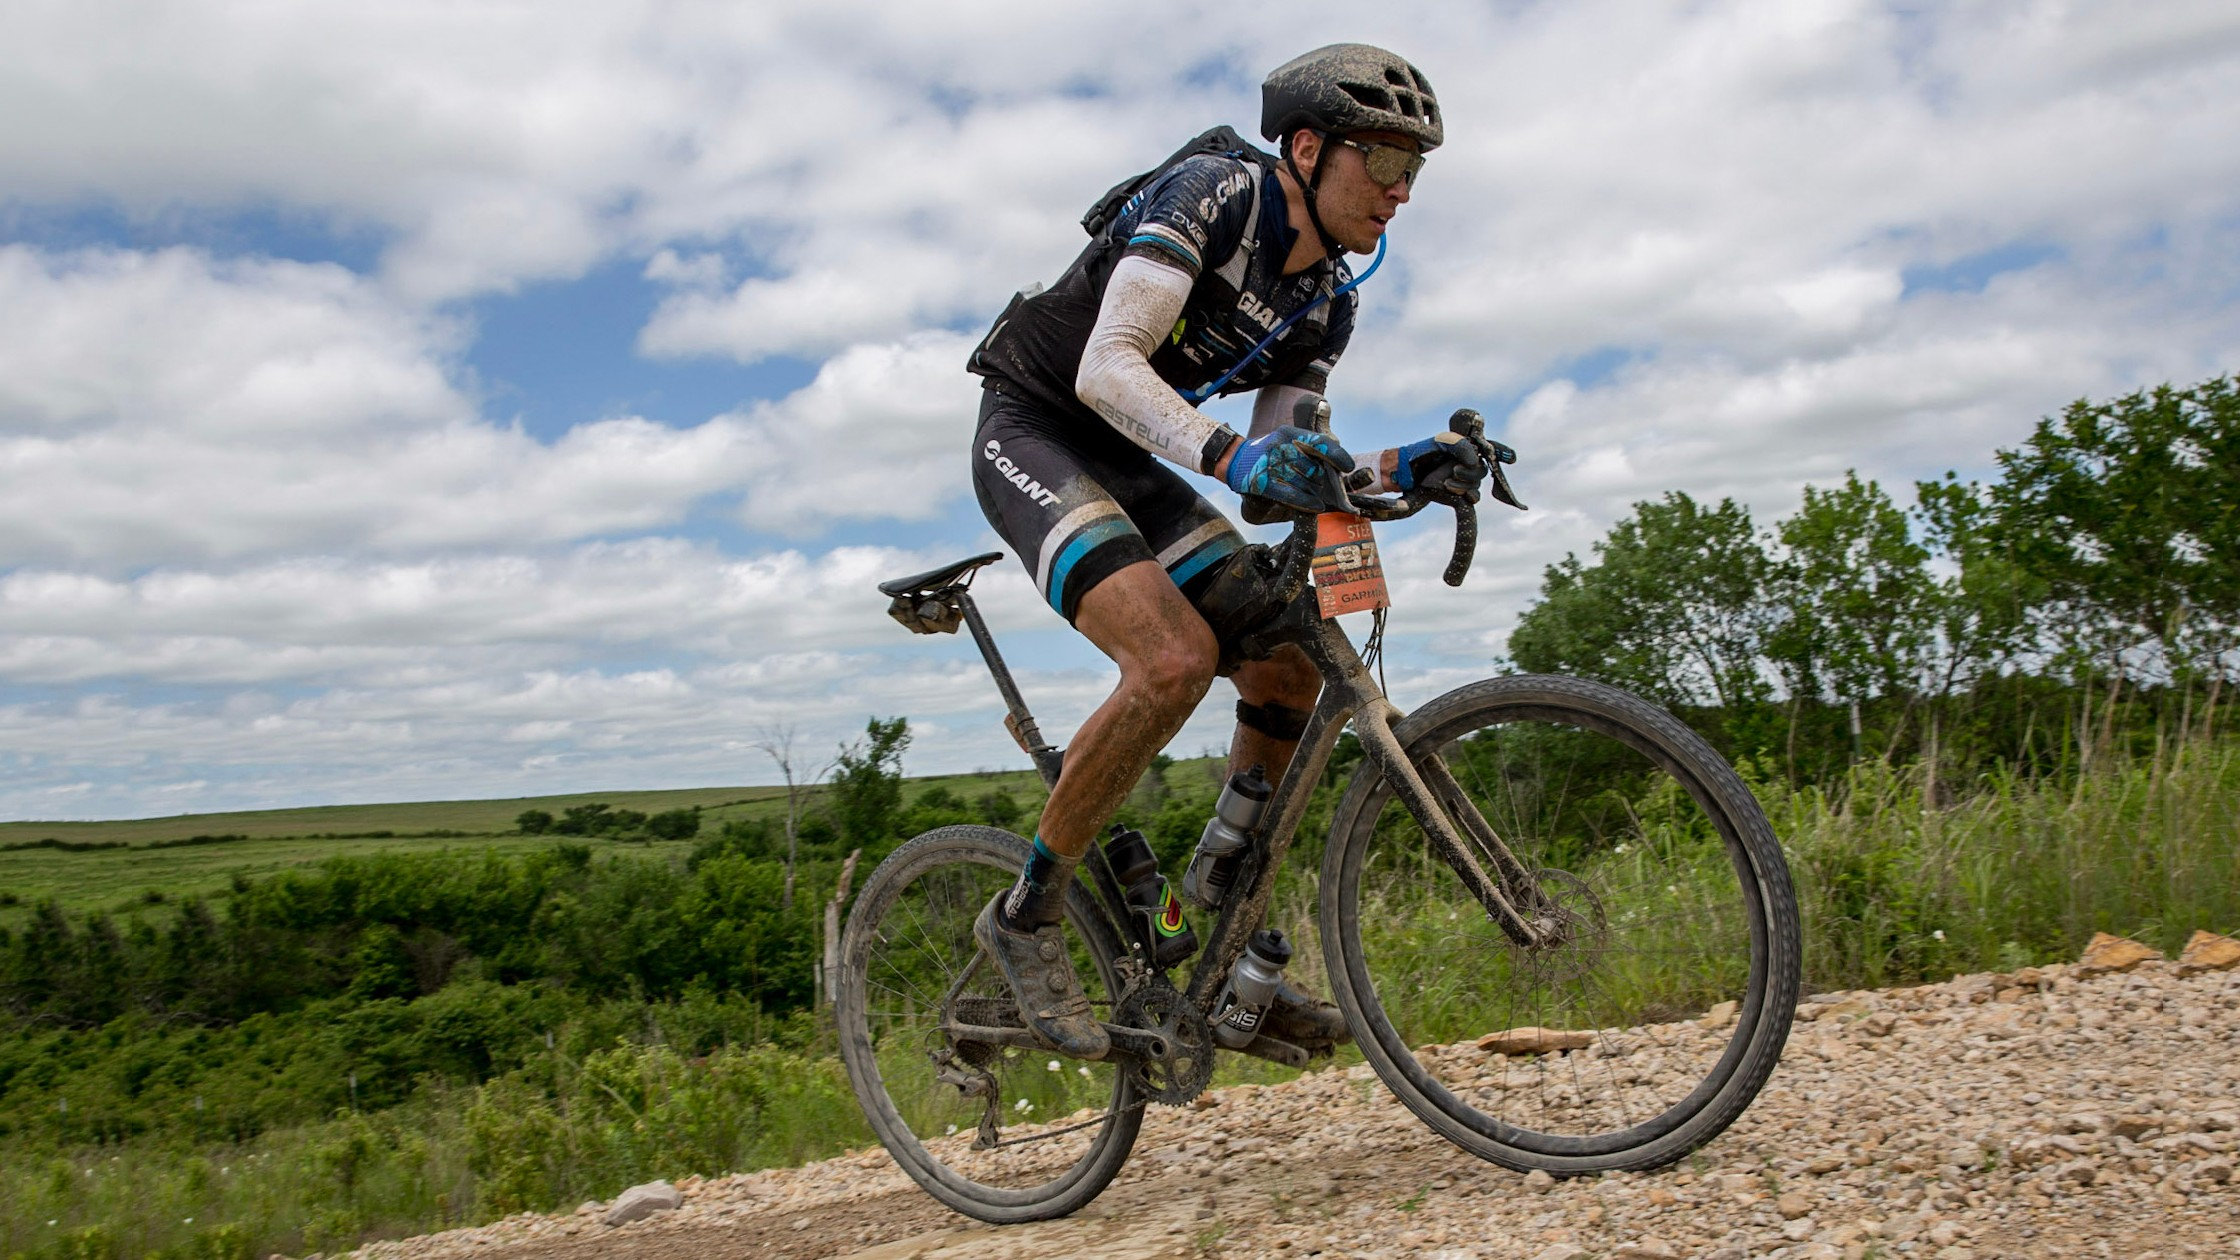 Giant rider Ryan Steers raced this then-unnamed prototype Revolt Advanced at this year's Dirty Kanza 200